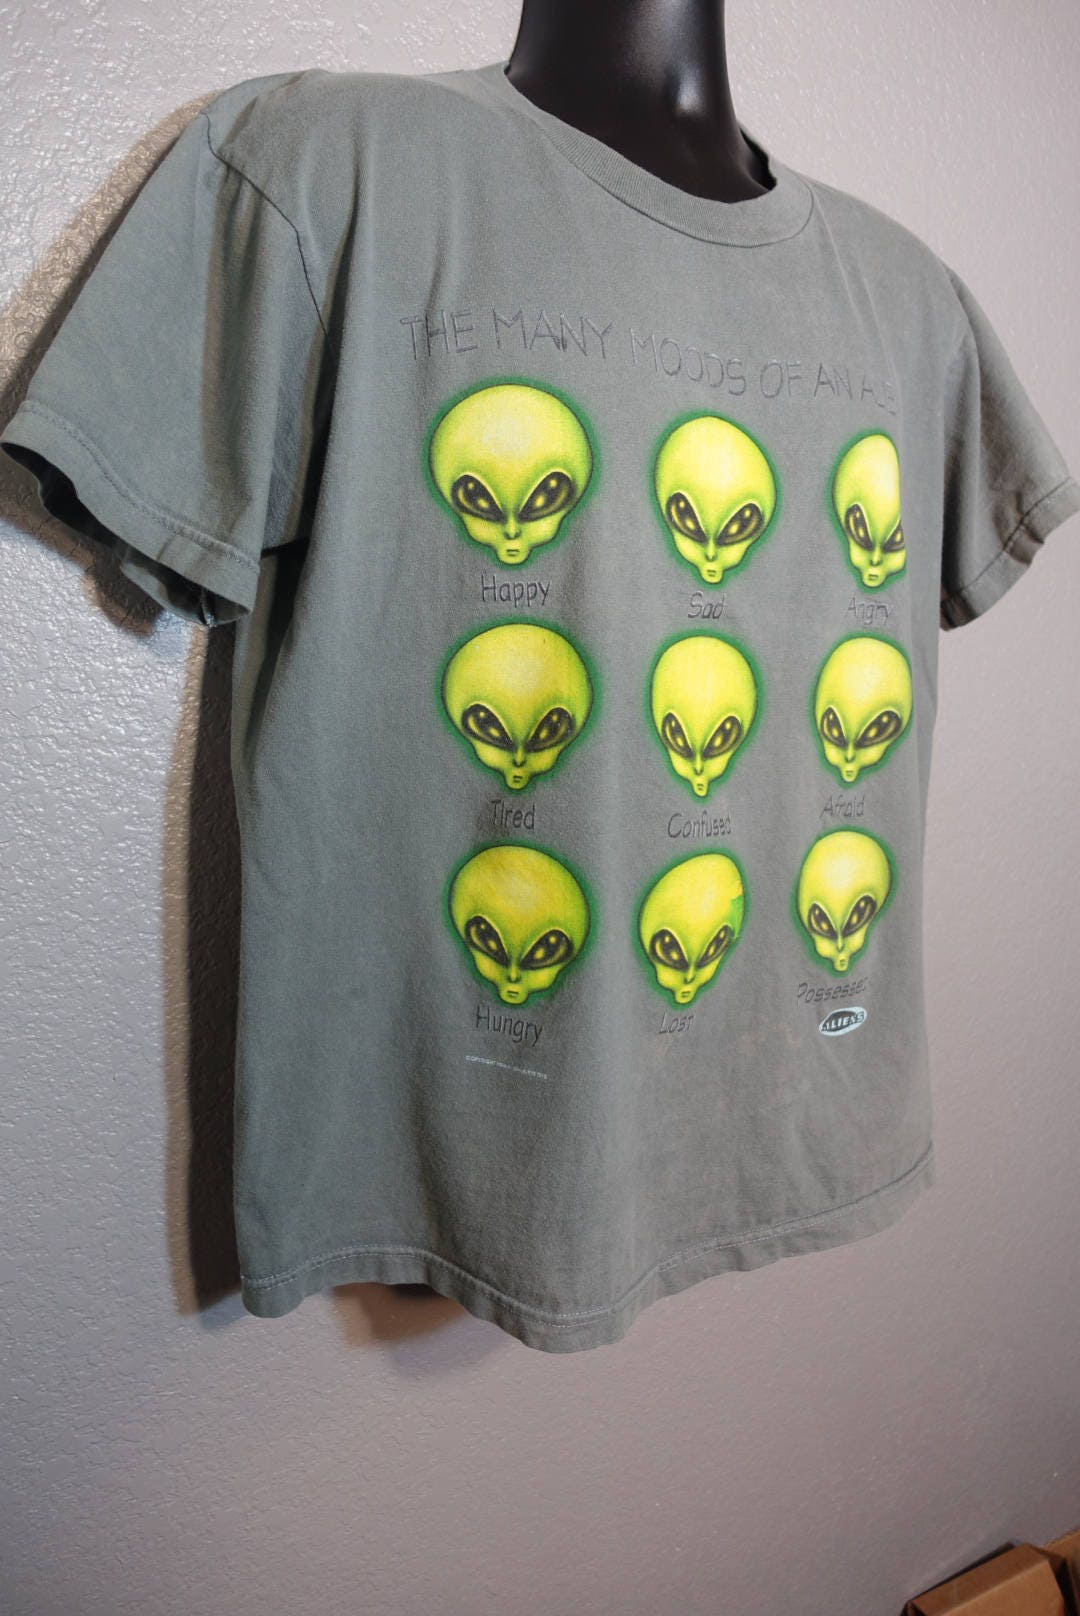 1996 RARE Alien Workshop - The Many Moods of an Alien - Skater ...